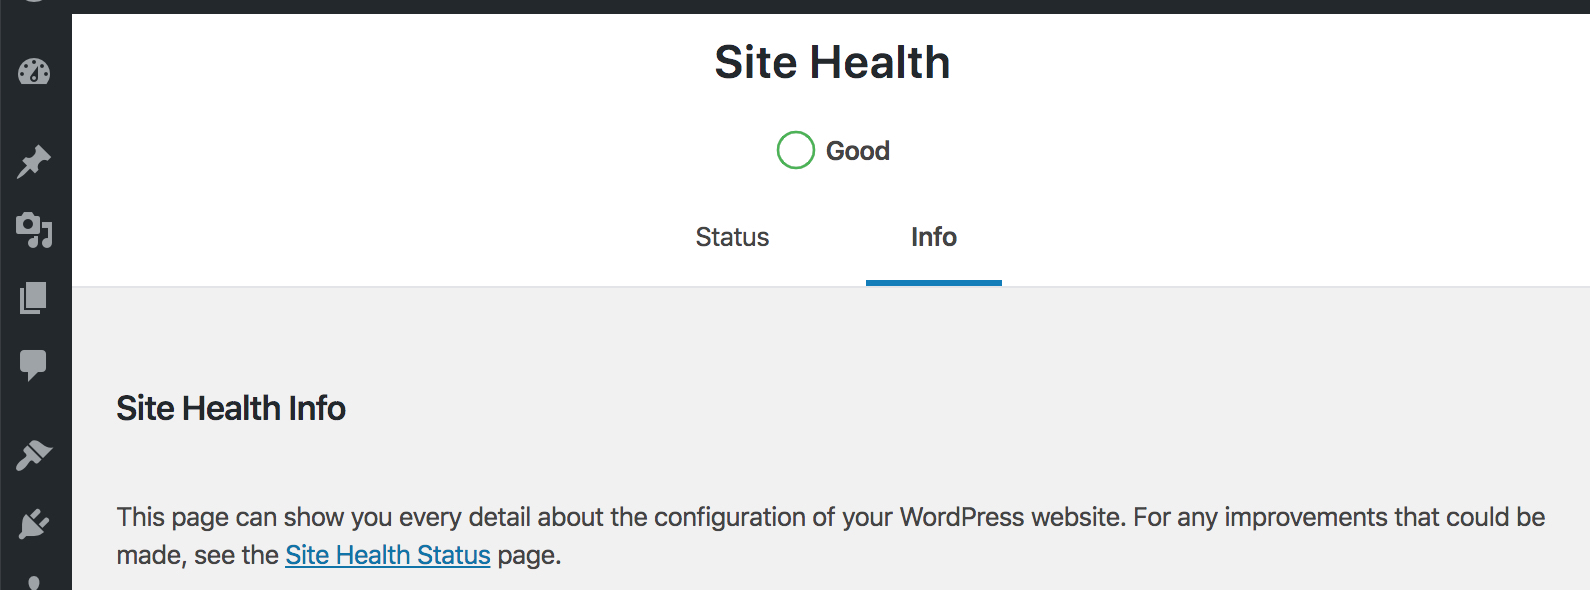 Your WordPress server tuned for 100% Site health